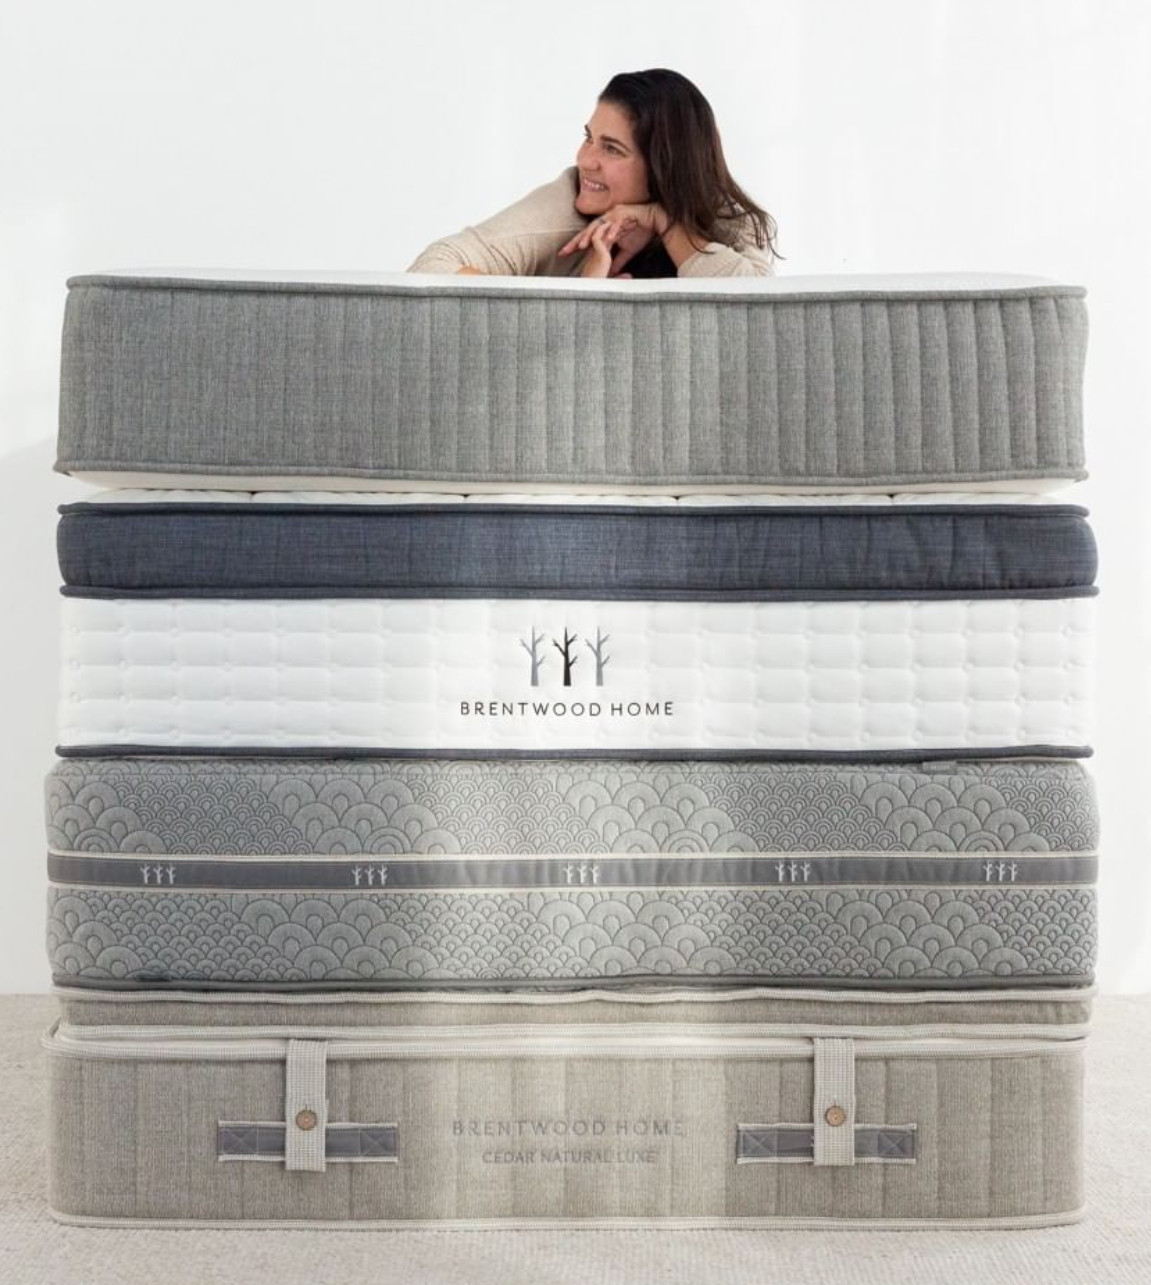 brentwood home mattresses